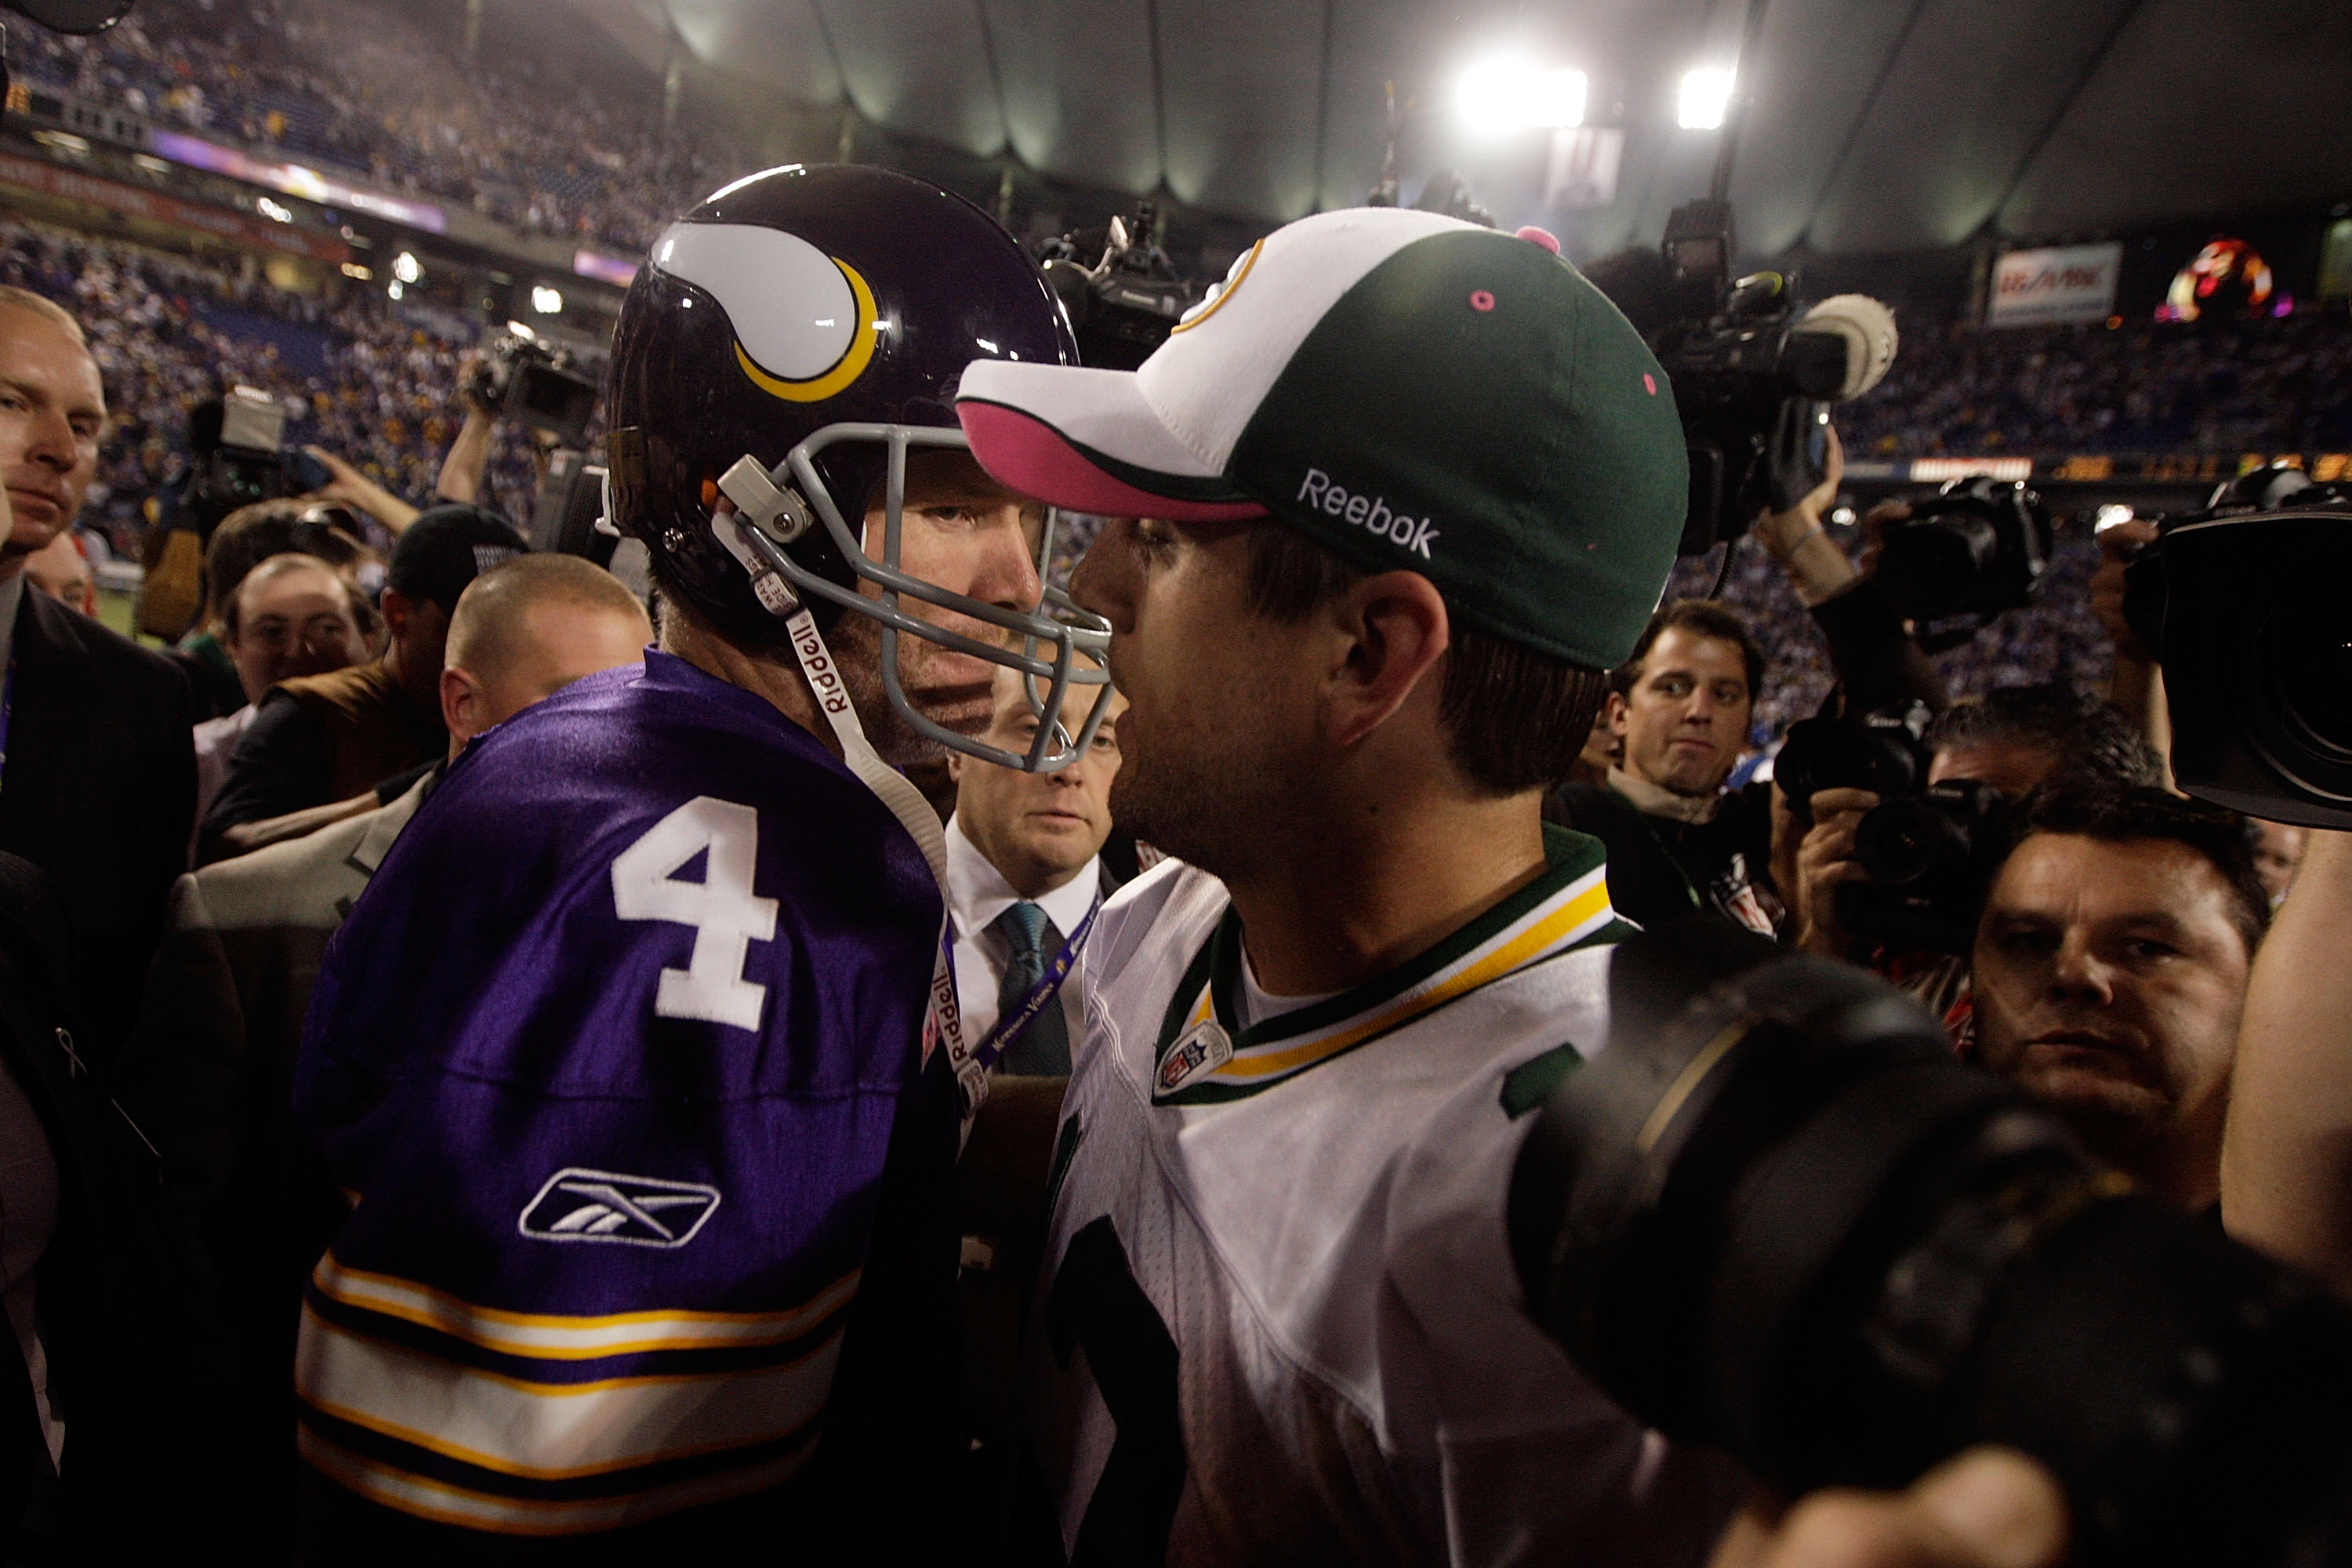 MINNEAPOLIS - OCTOBER 05:  Quarterback Brett Favre #4 of the Minnesota Vikings hugs Aaron Rodgers #12 of the Green Bay Packers following the Vikings victory over the Packers on October 5, 2009 at Hubert H. Humphrey Metrodome in Minneapolis, Minnesota.  (P